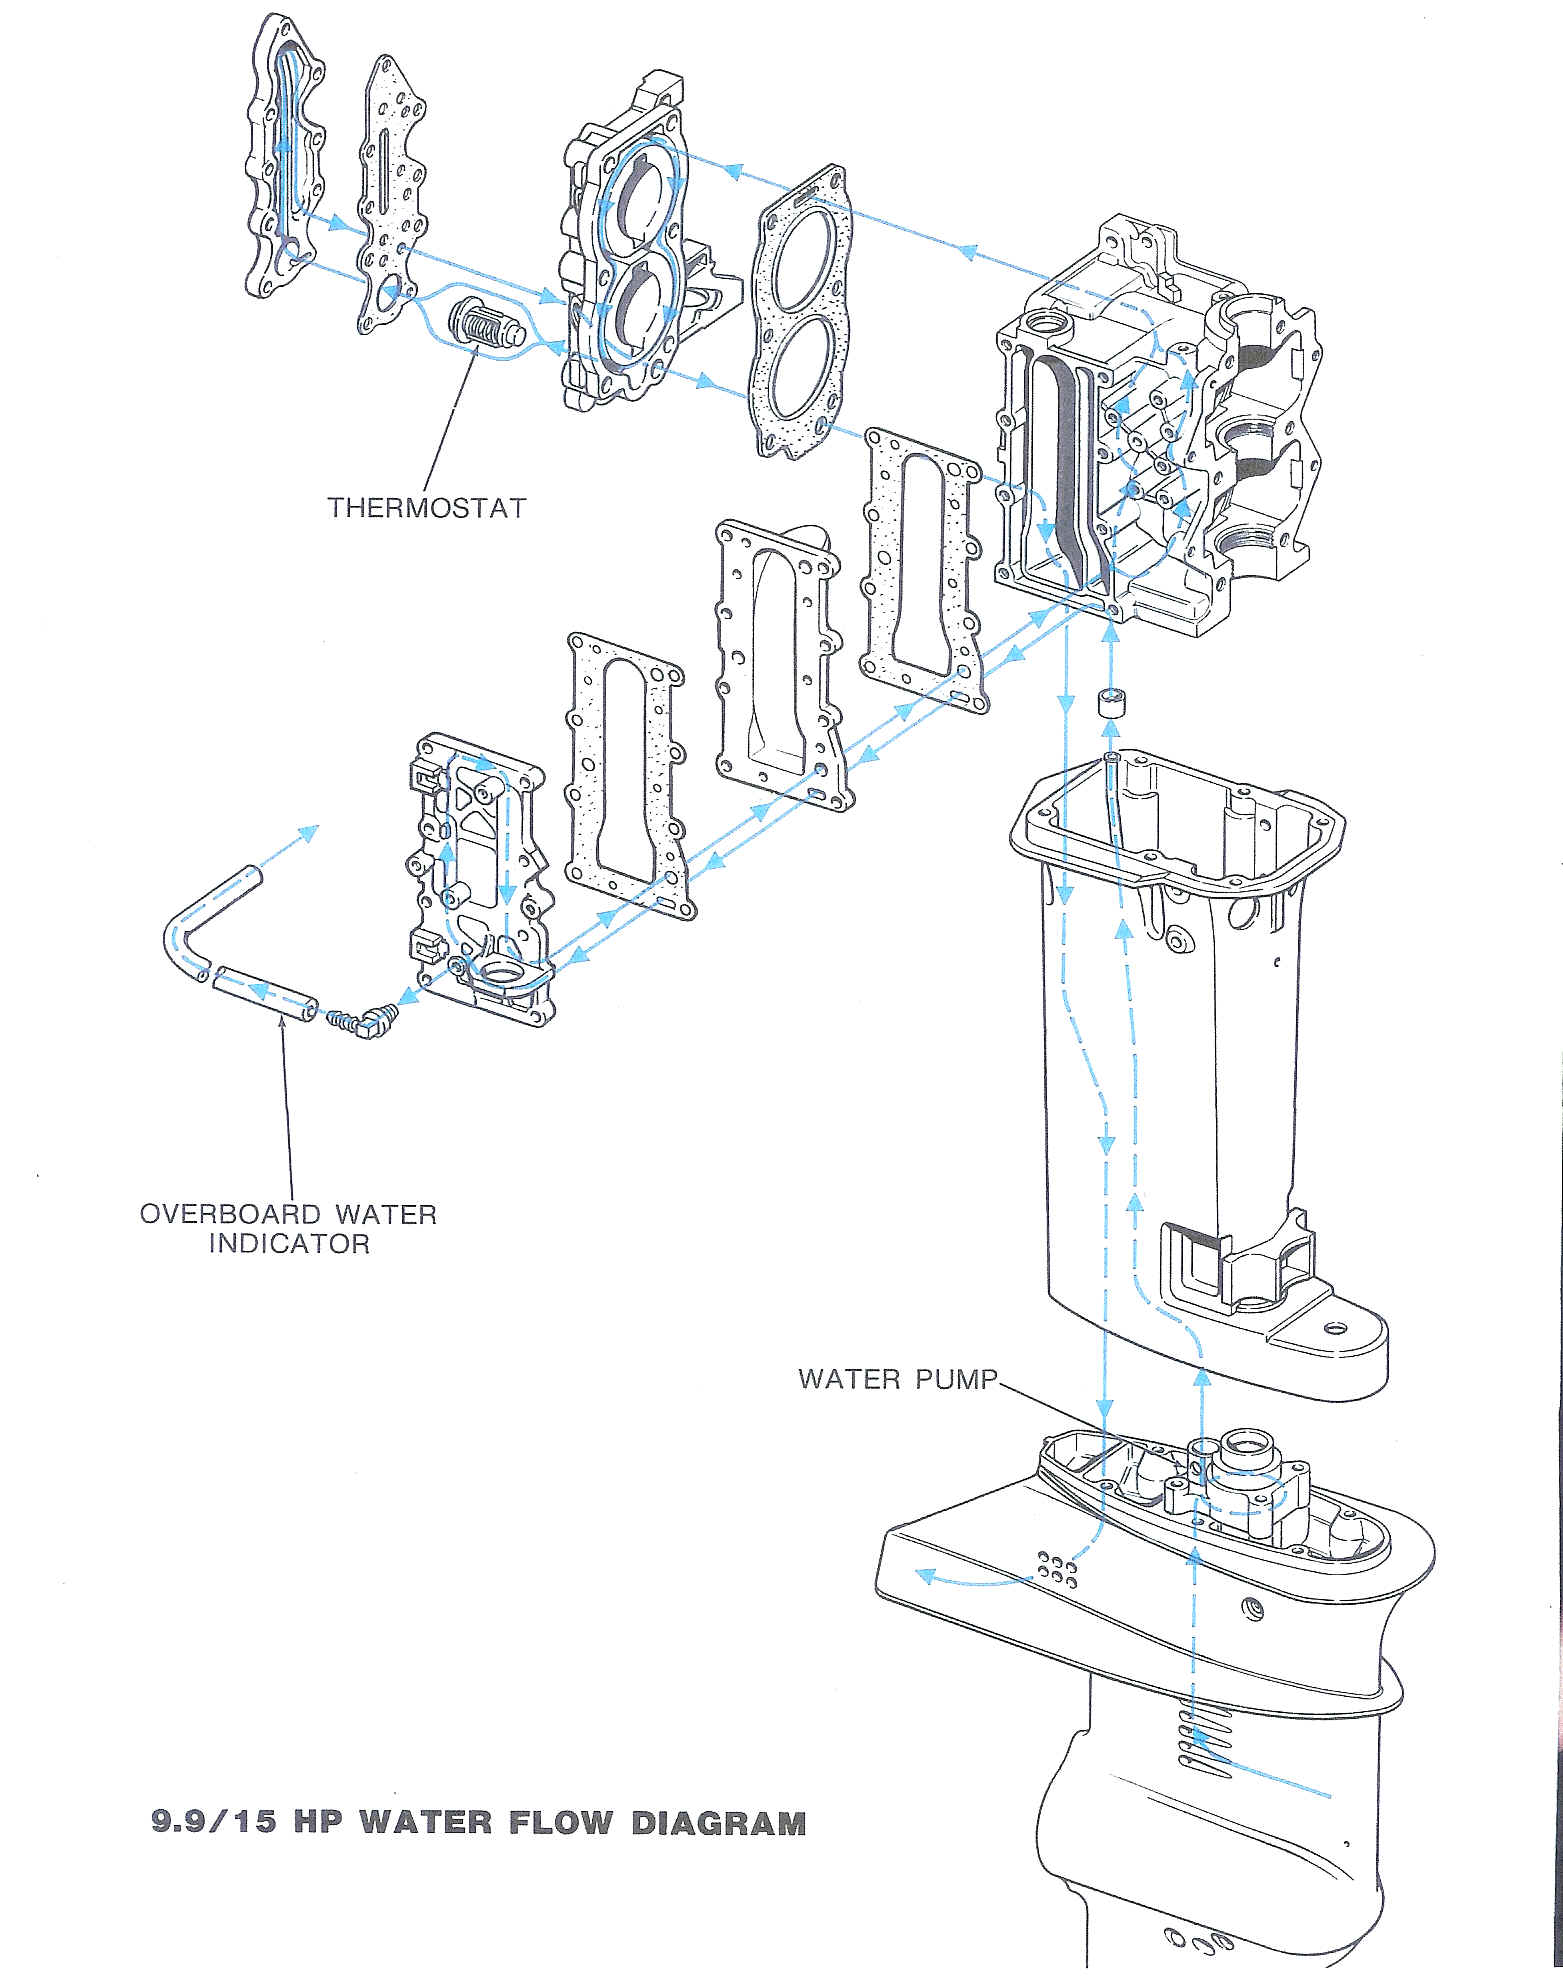 35 Hp Johnson Outboard Wiring Diagram Evinrude 25 Also Library 96 3 Cyl Images Gallery 74 On Water Problems